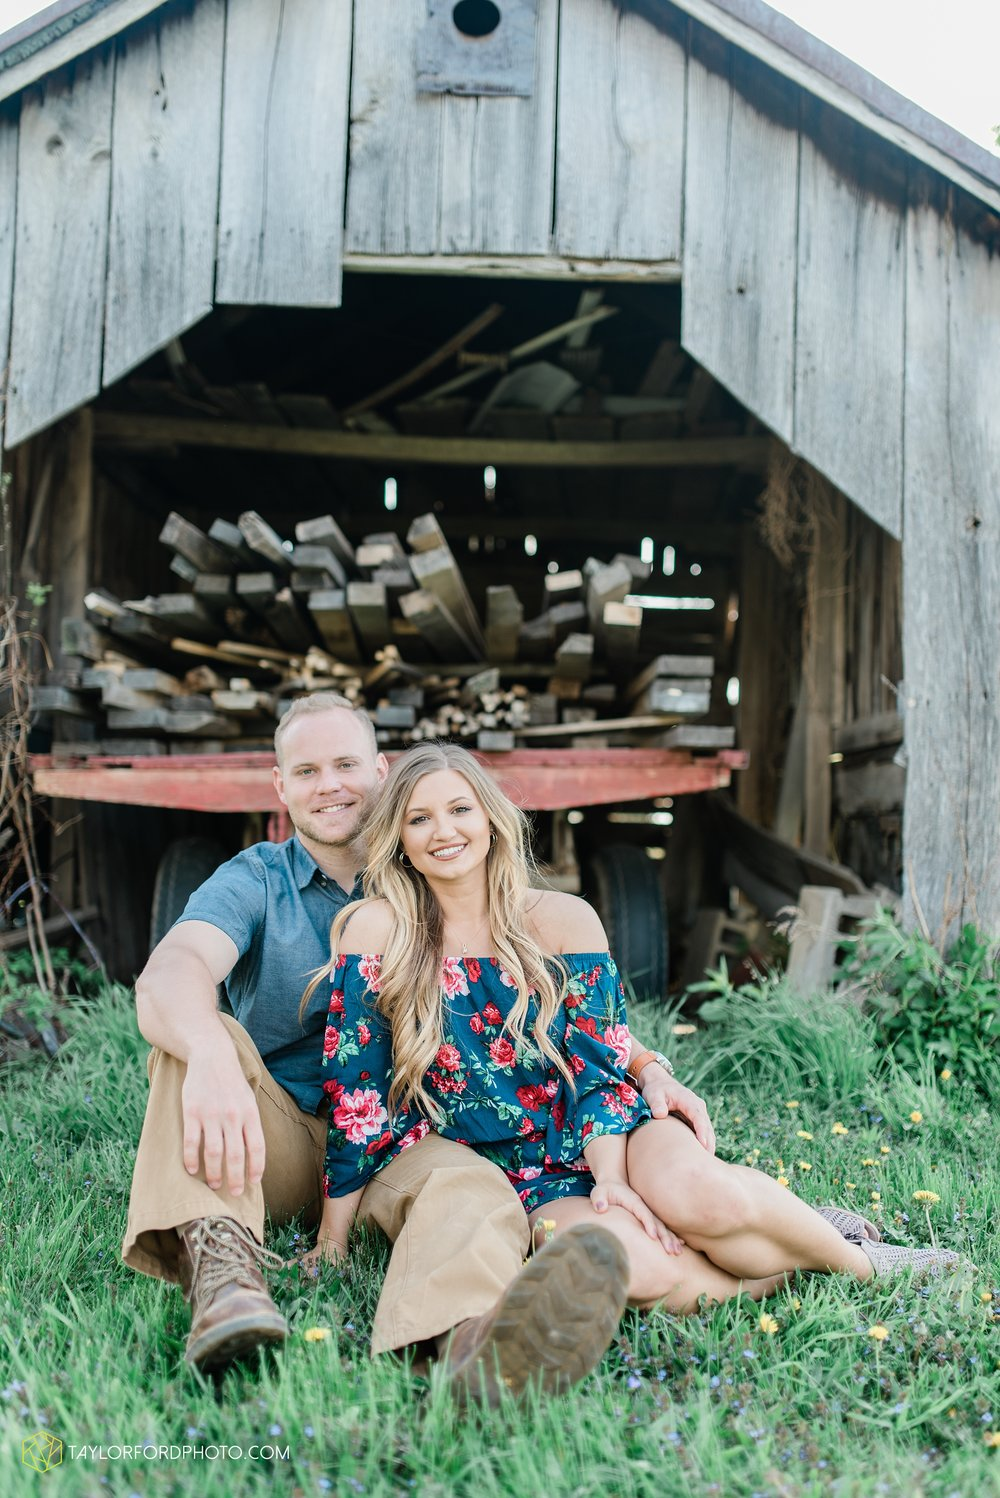 van-wert-ohio-spring-farm-engagement-photographer-photographer-Taylor-Ford-Photography_7089.jpg